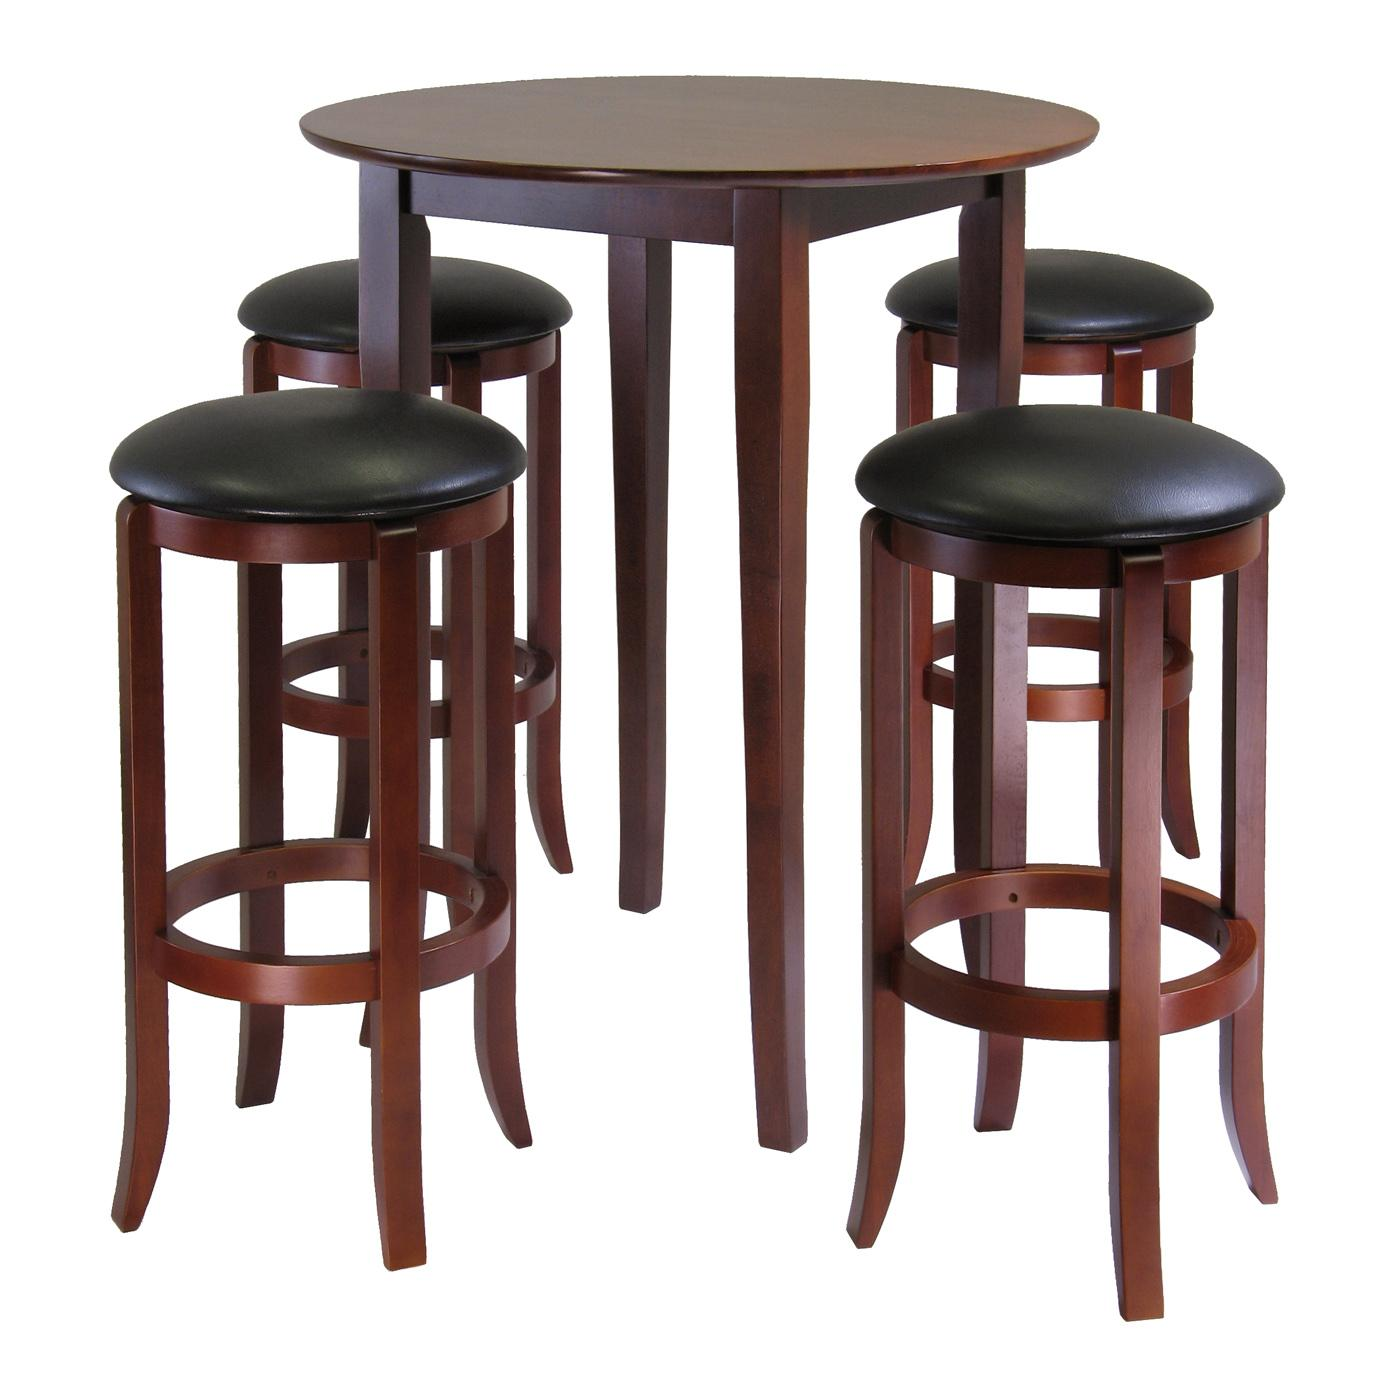 View larger  sc 1 st  Amazon.com & Amazon.com: Winsome Fiona 5-Piece Round High Pub Table Set in ...